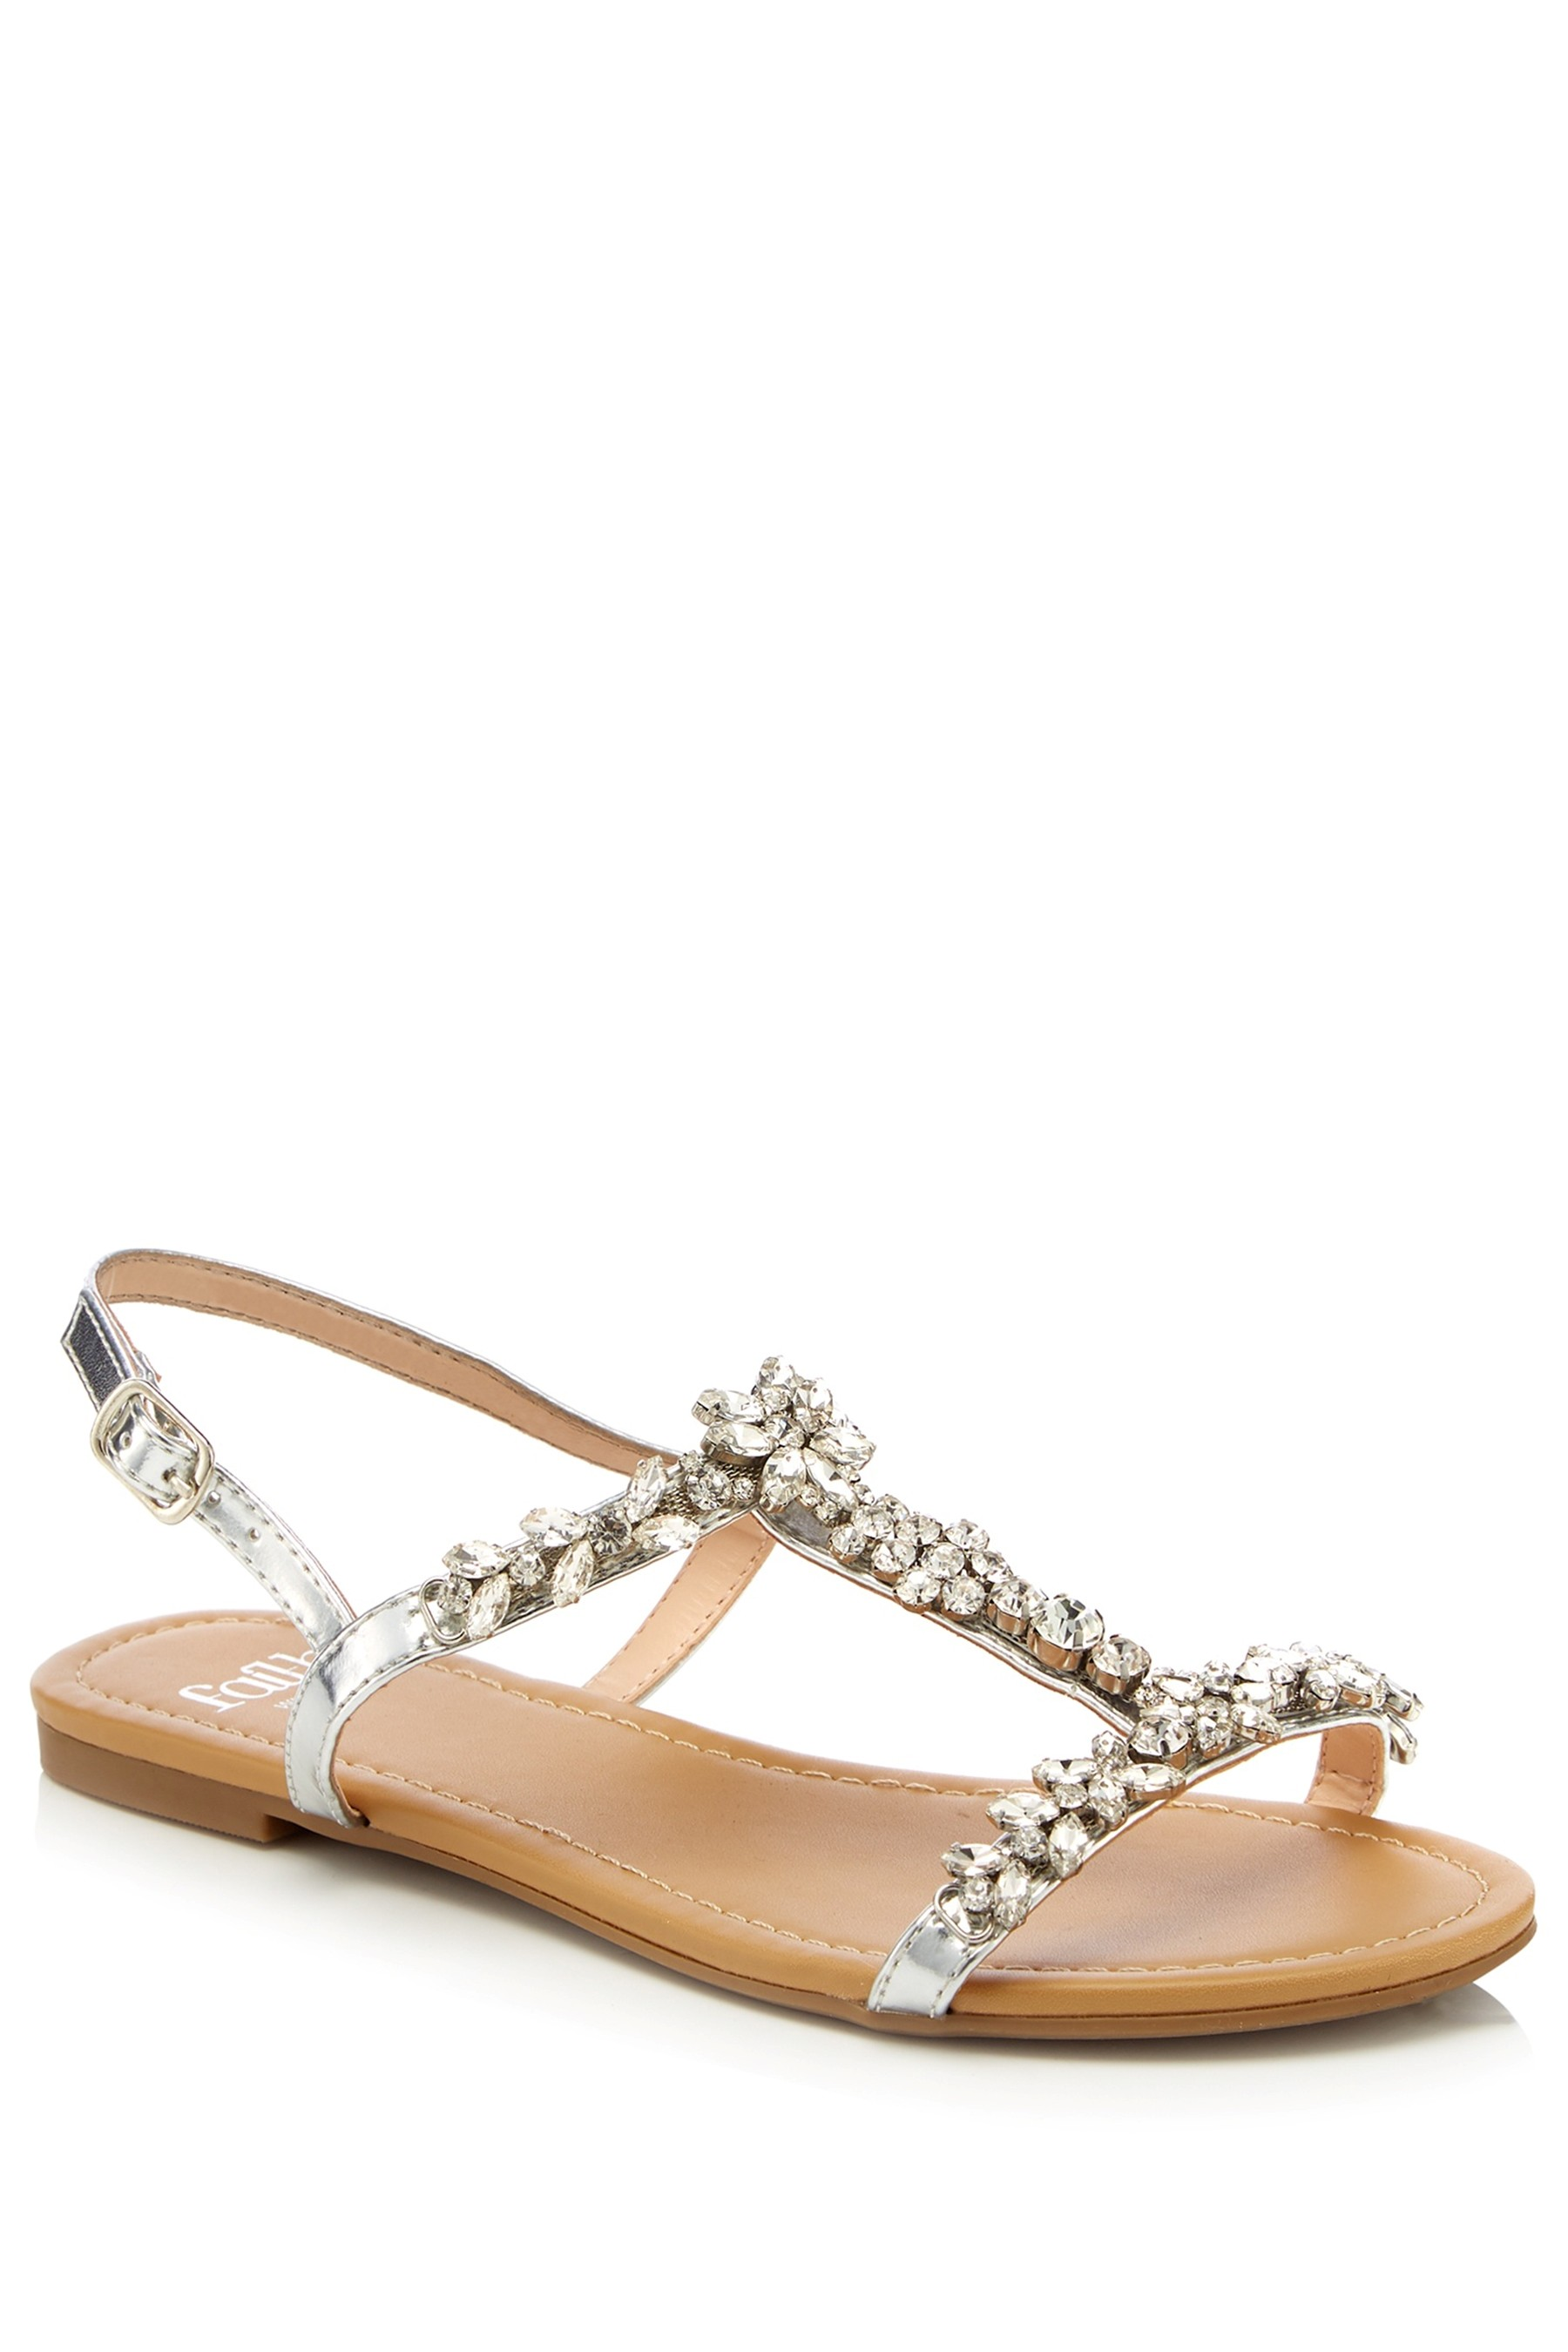 new style release date: good service Faith Wide Fit Flat Sandals | Flat sandals, Sandals, Pairs